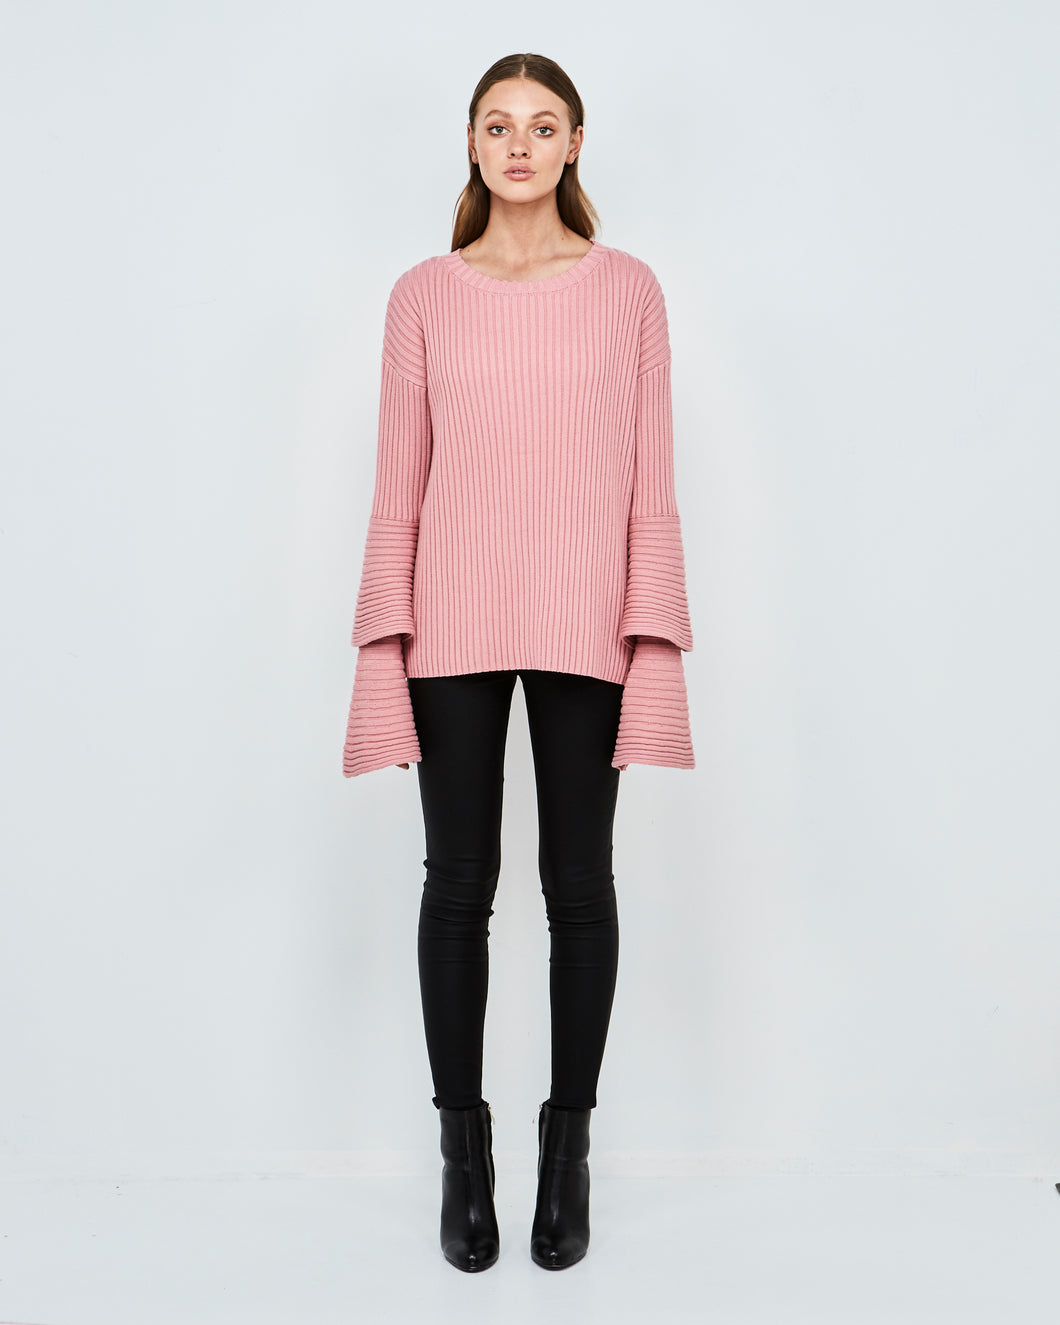 Emillie Constrast Knit (Rose Pink)